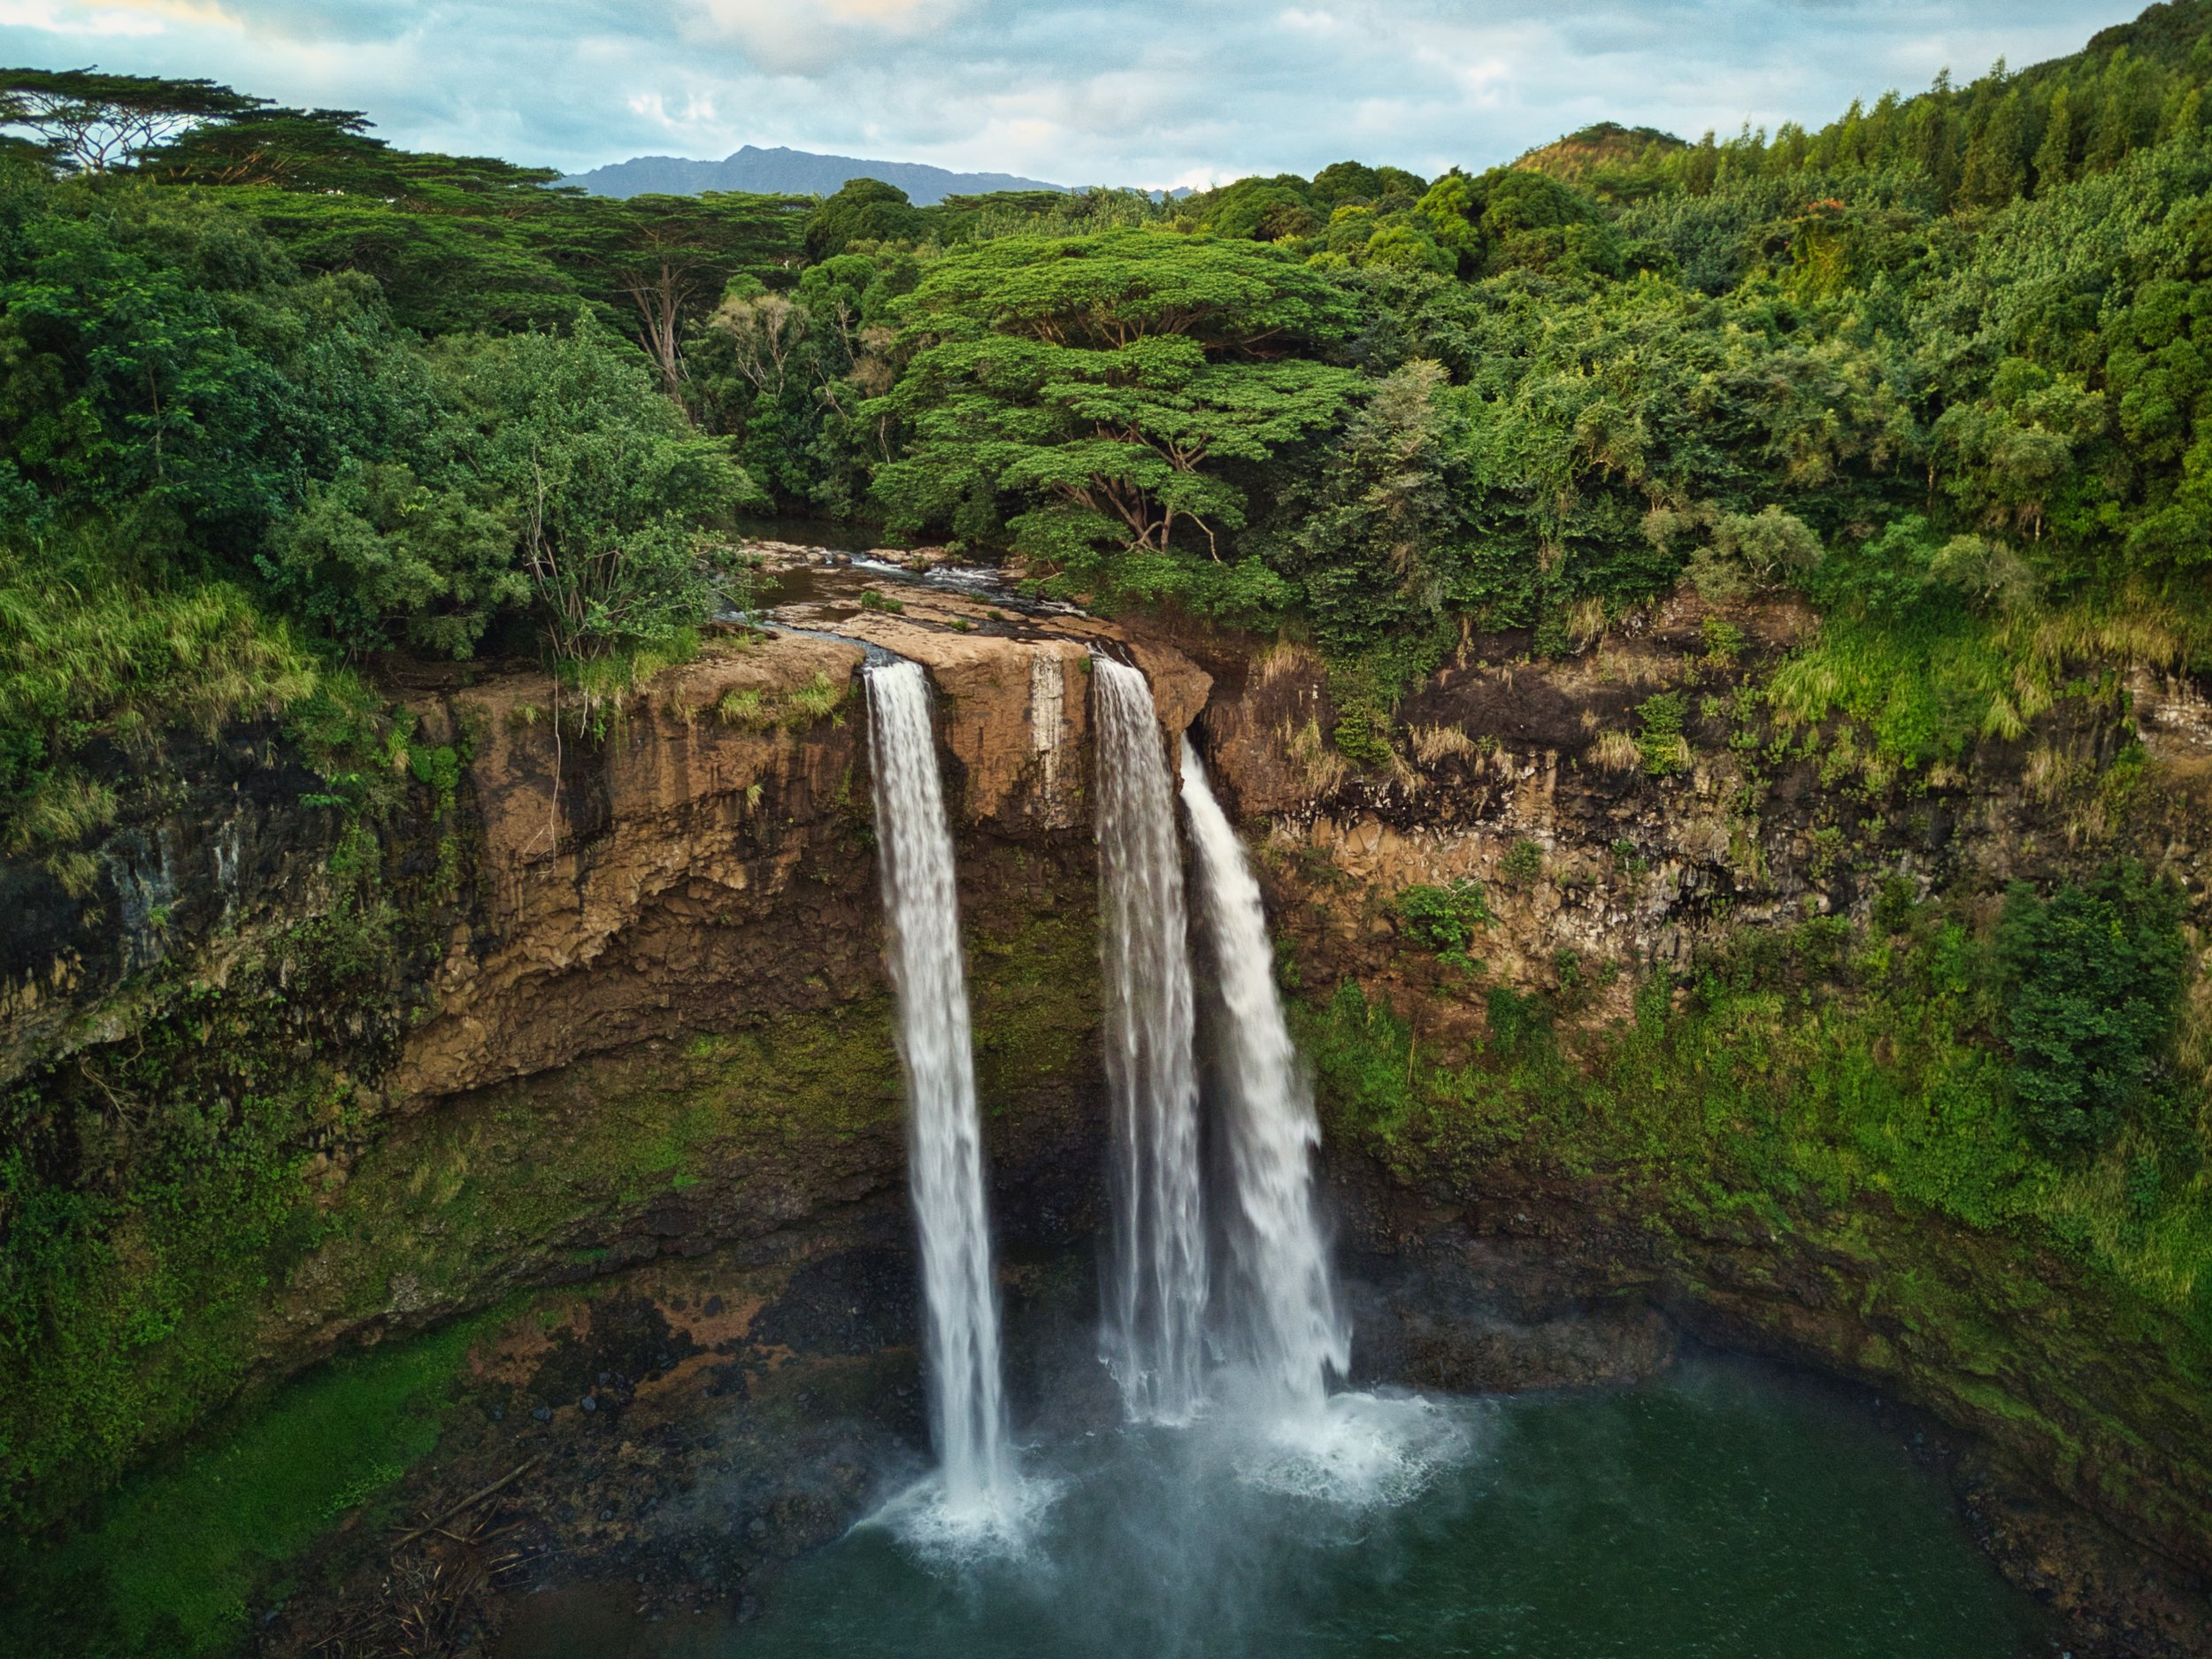 Wailua Falls  Camera: DJI Mavic Pro Shutter speed: 1/25 sec Aperture: f/2.2 ISO: 177 Photo: Jeff Carlson